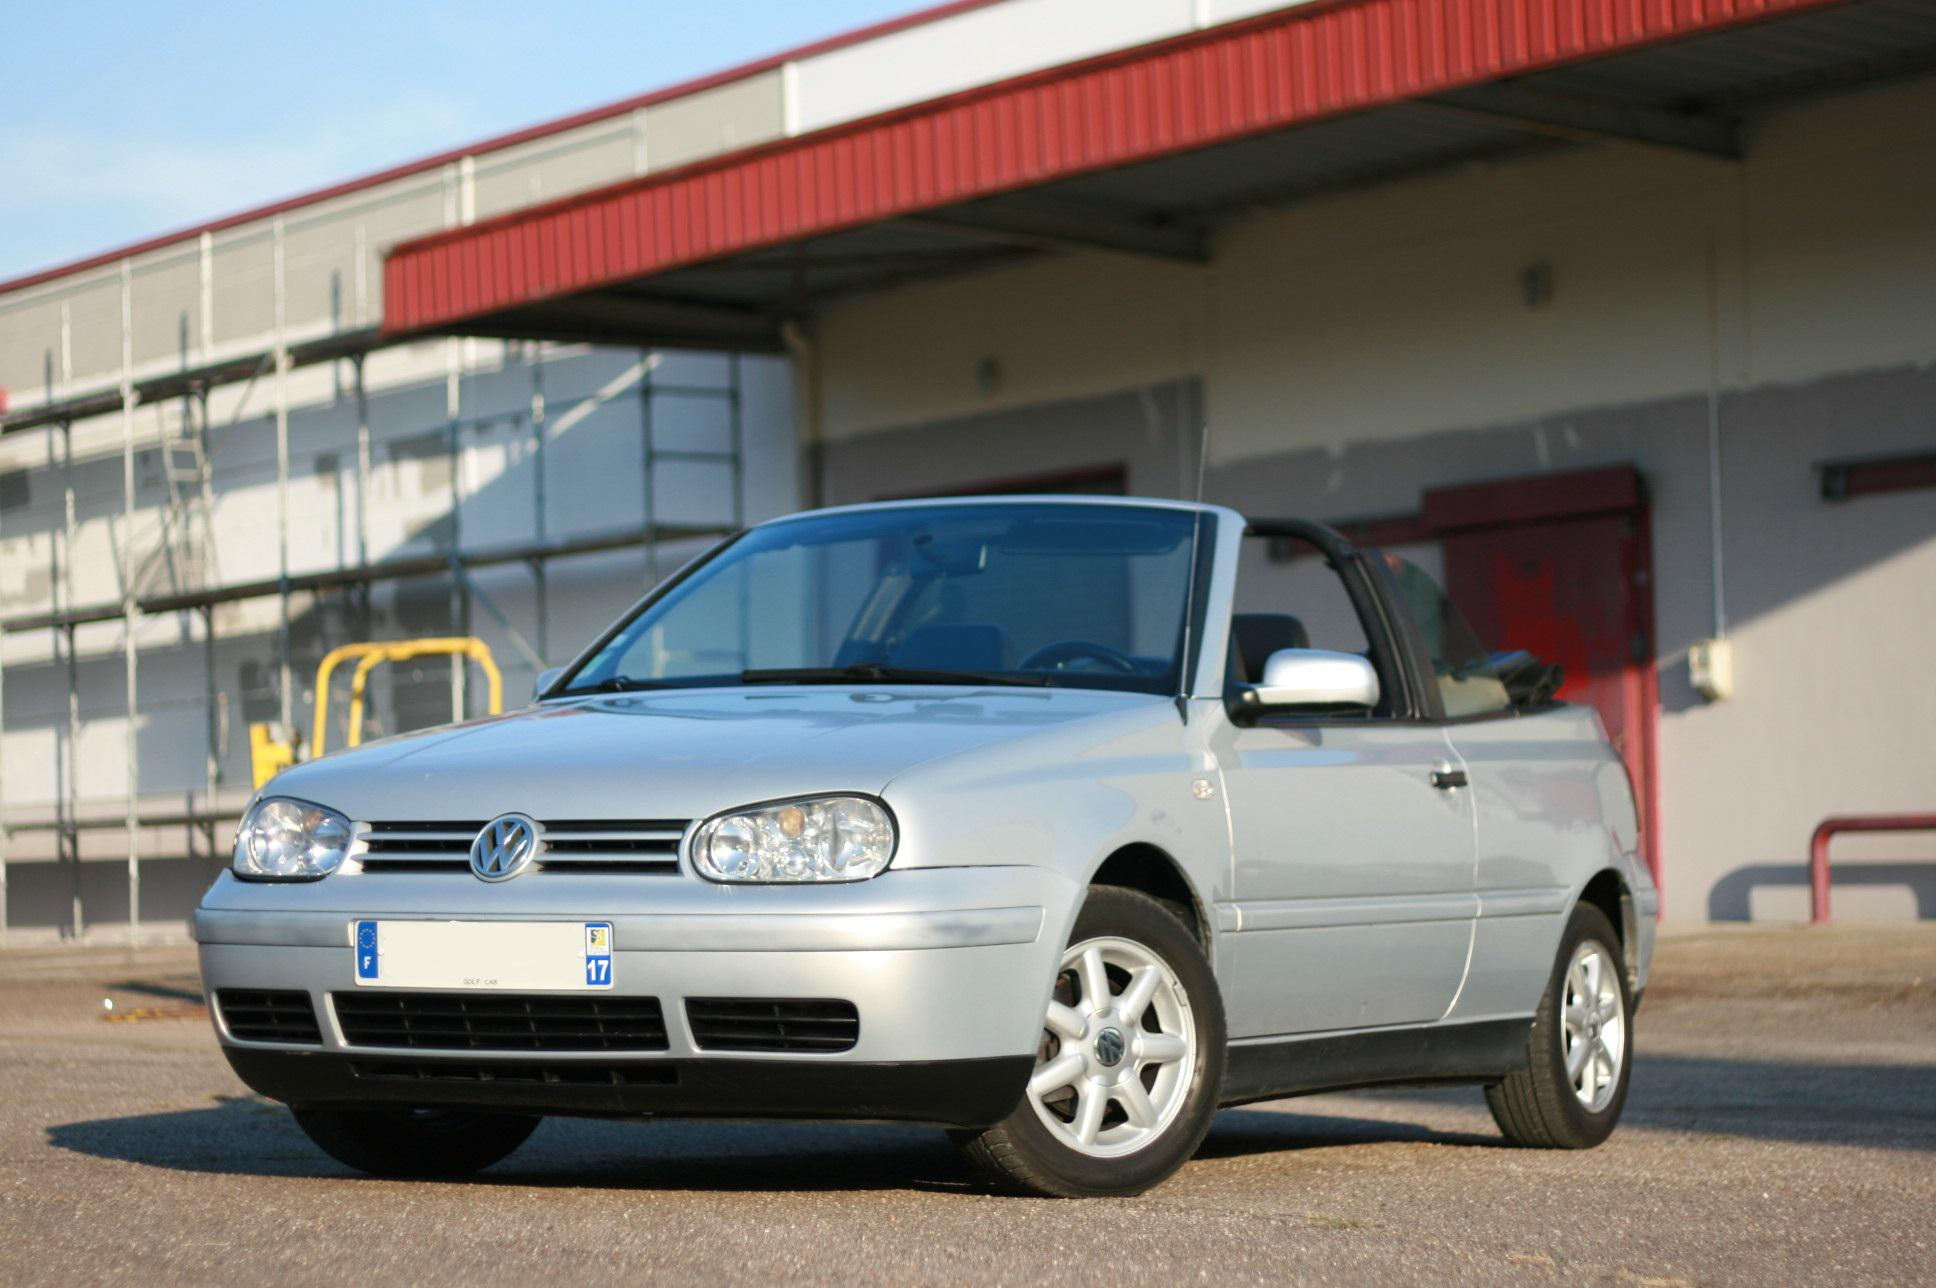 vw golf iv cabriolet 1 6 carat 1999 garage des golf iv 1 6 1 6 16v forum volkswagen. Black Bedroom Furniture Sets. Home Design Ideas